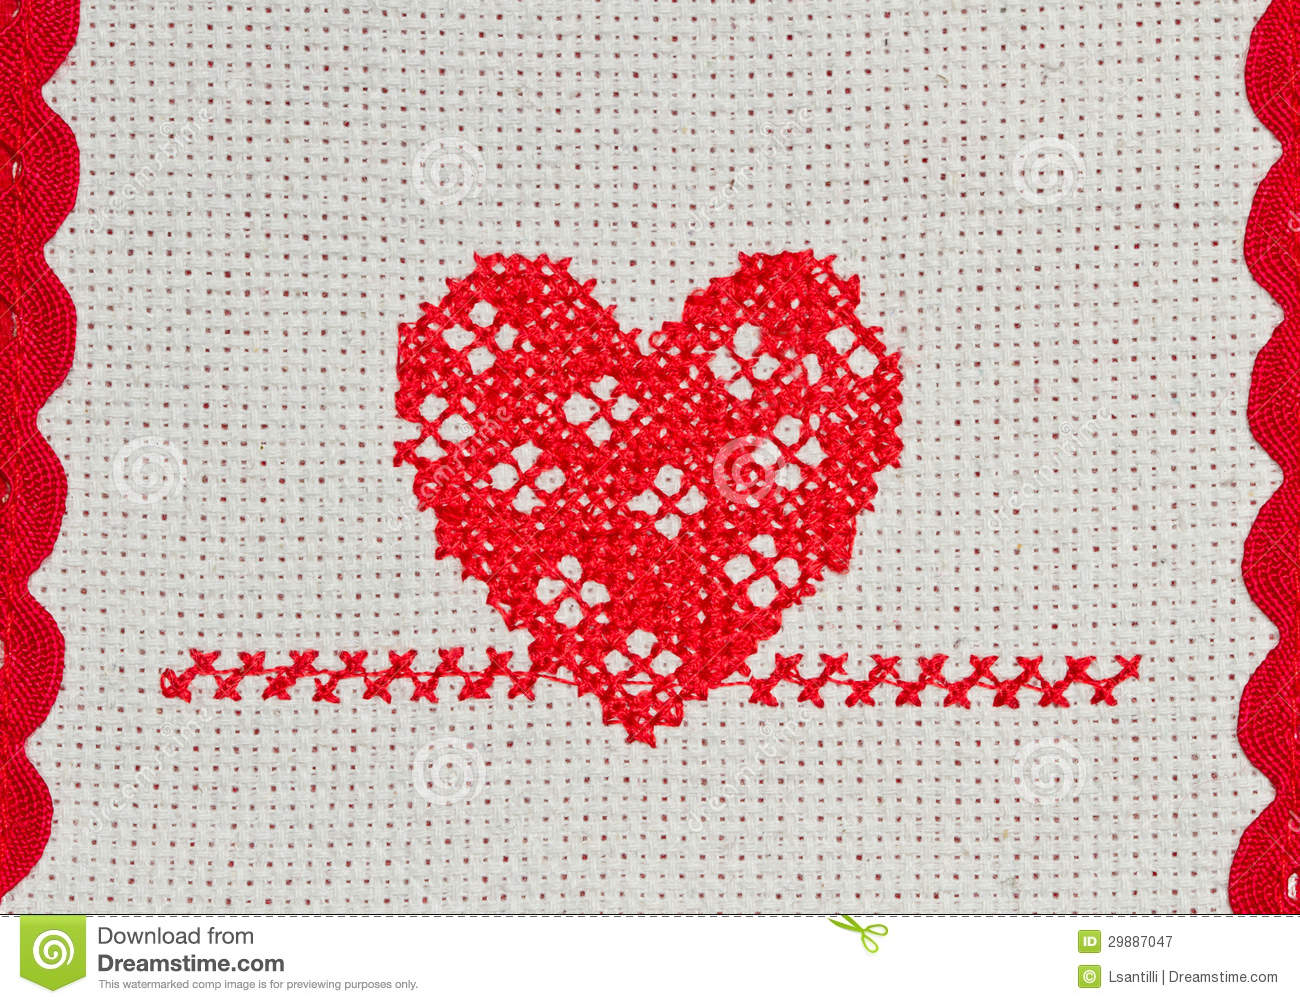 Red heart embroidered in cross stitch royalty free stock